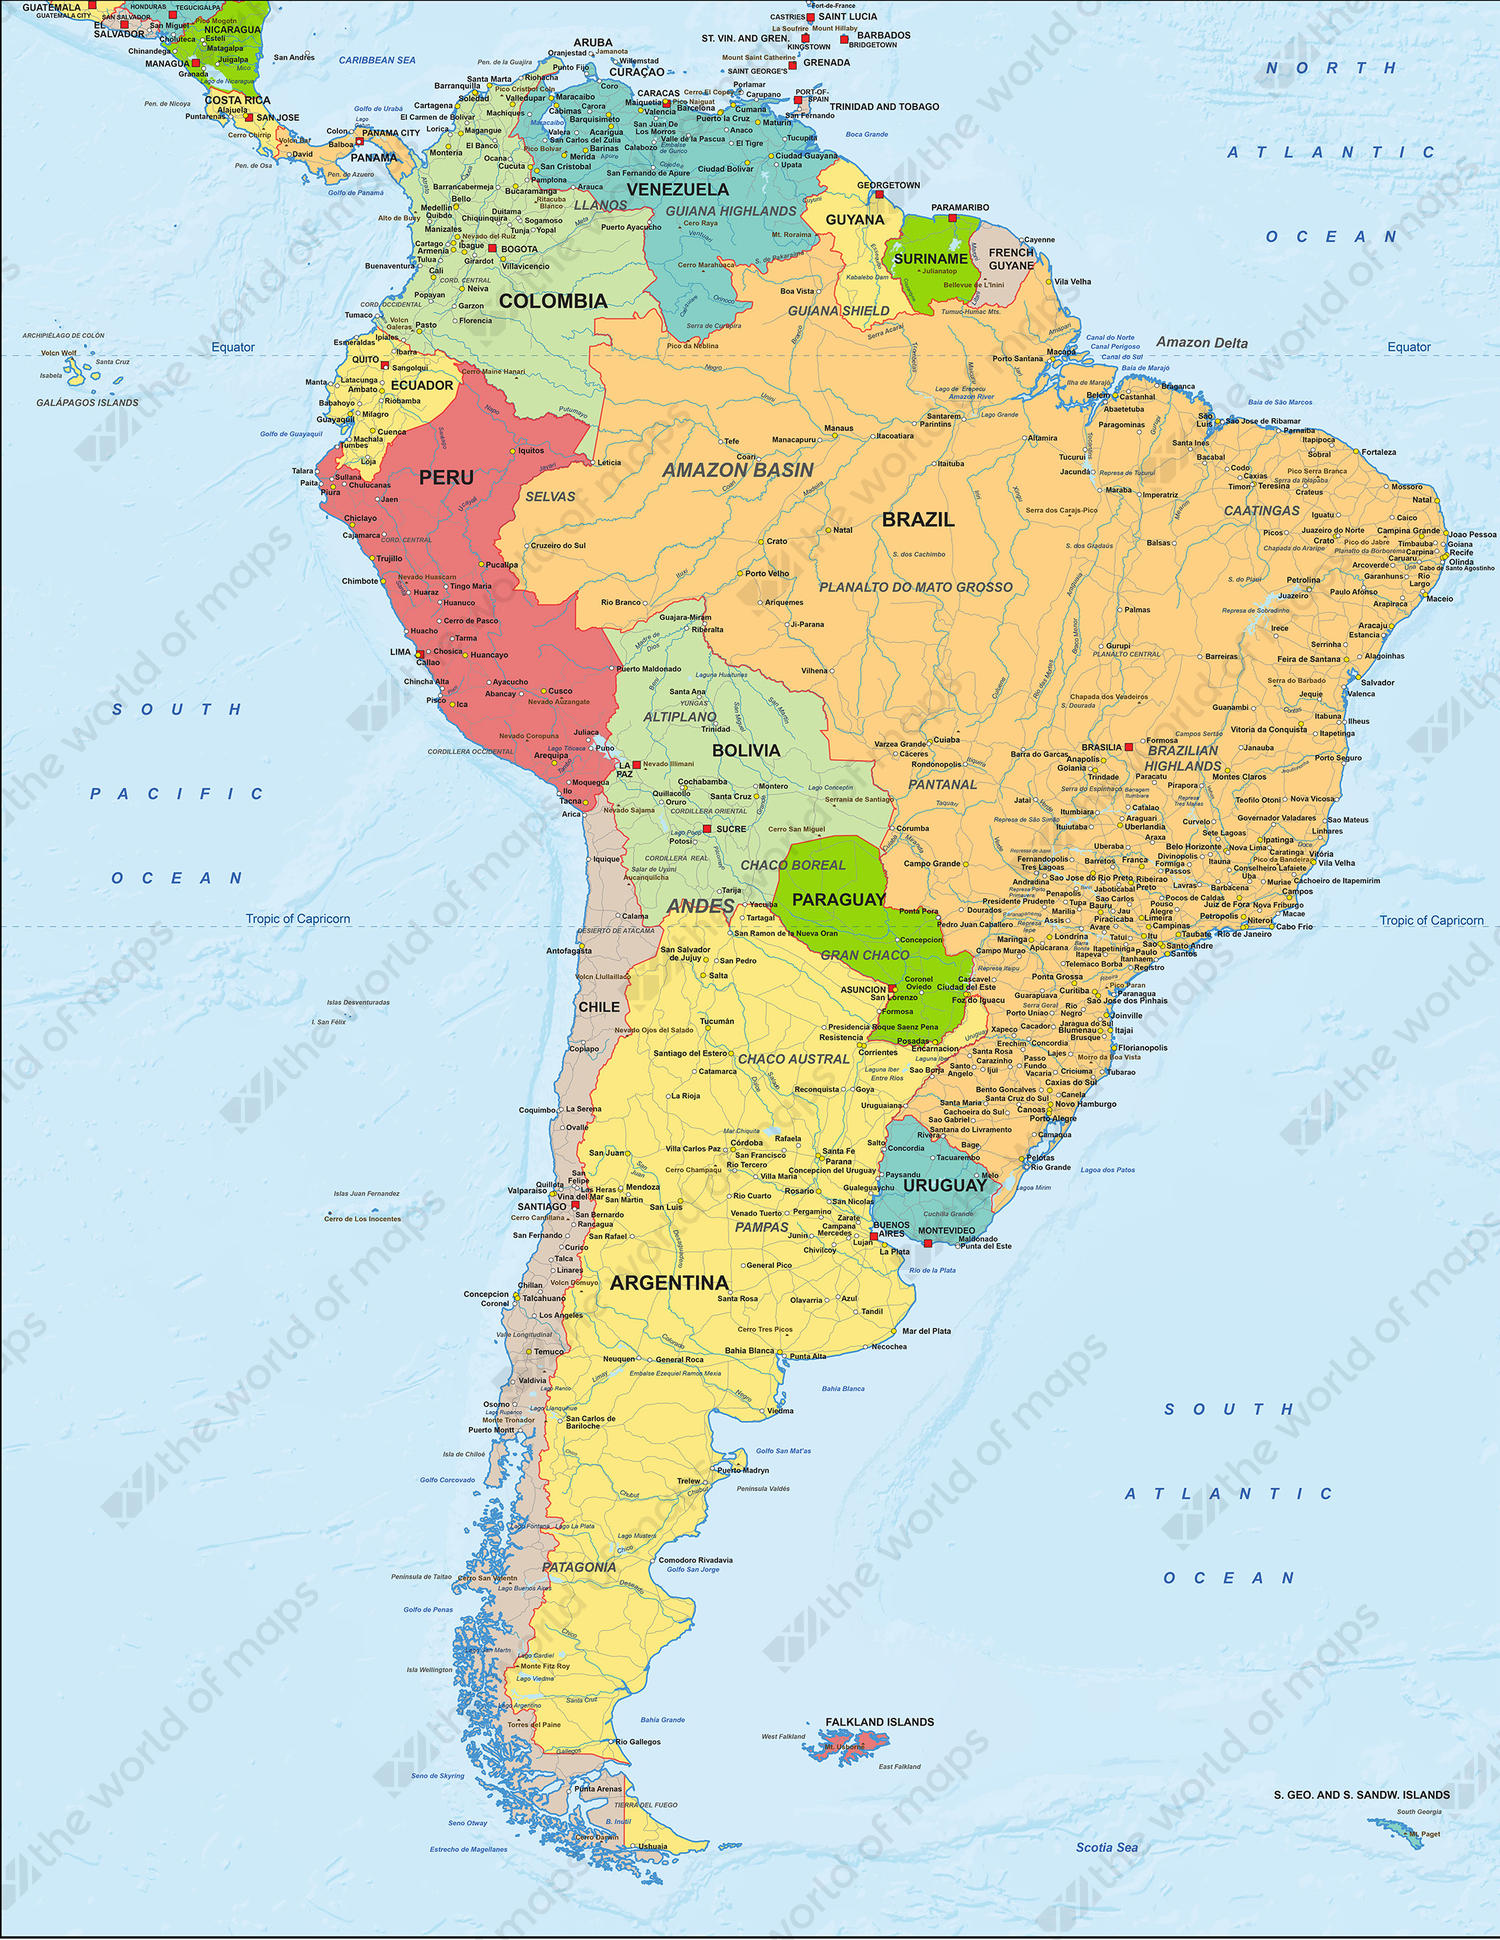 Map Of America Political.Digital Map South America Political 1280 The World Of Maps Com